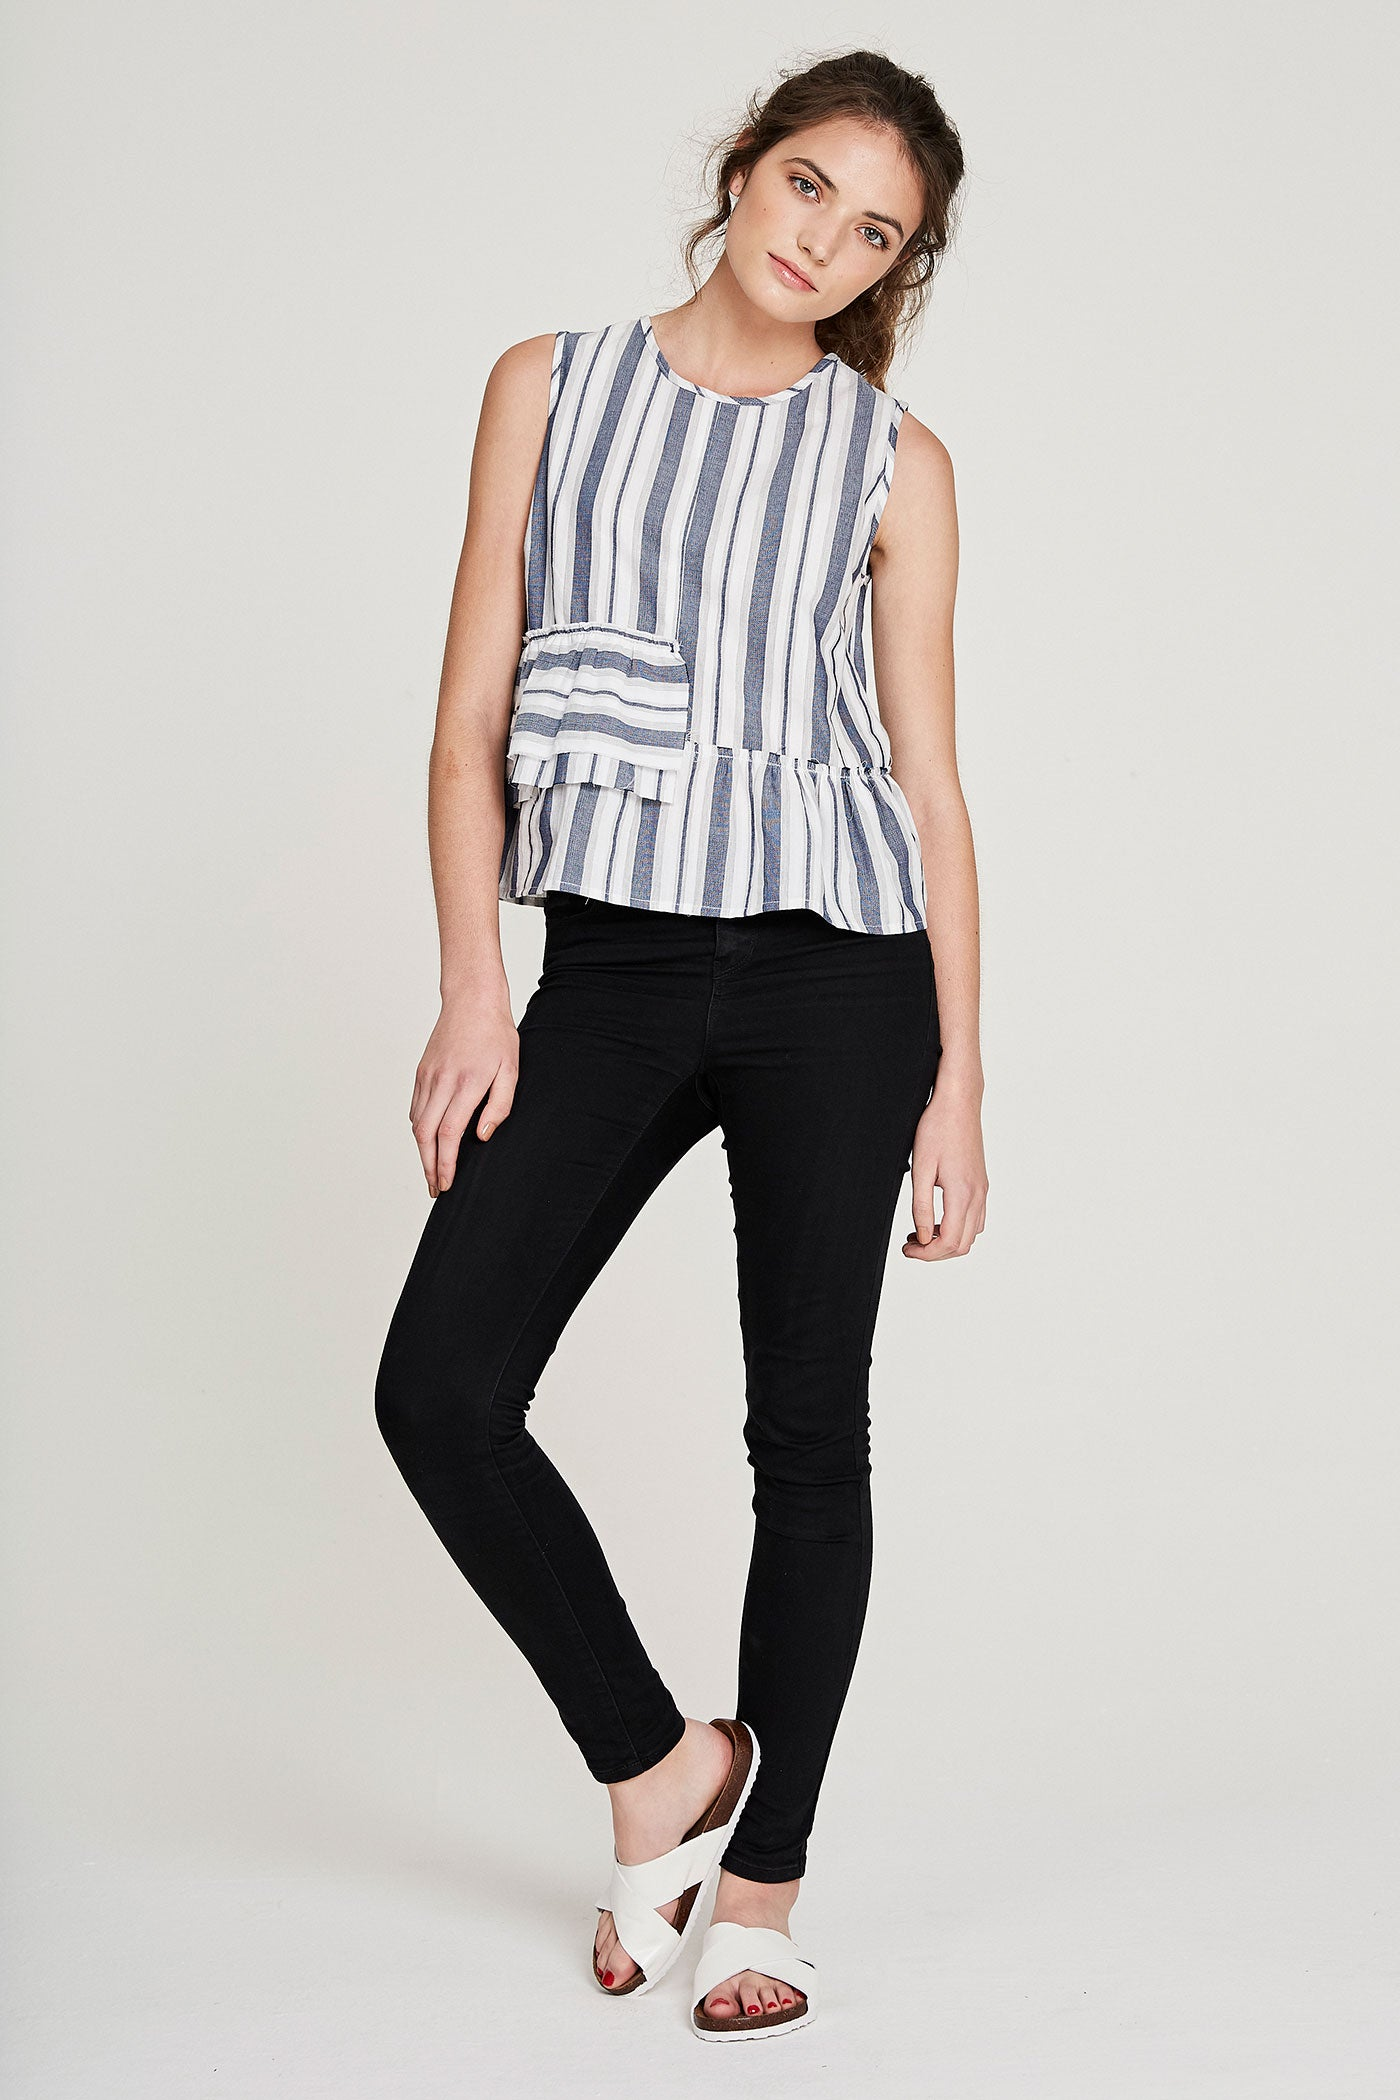 Frill Tank - Blue & Grey Stripe